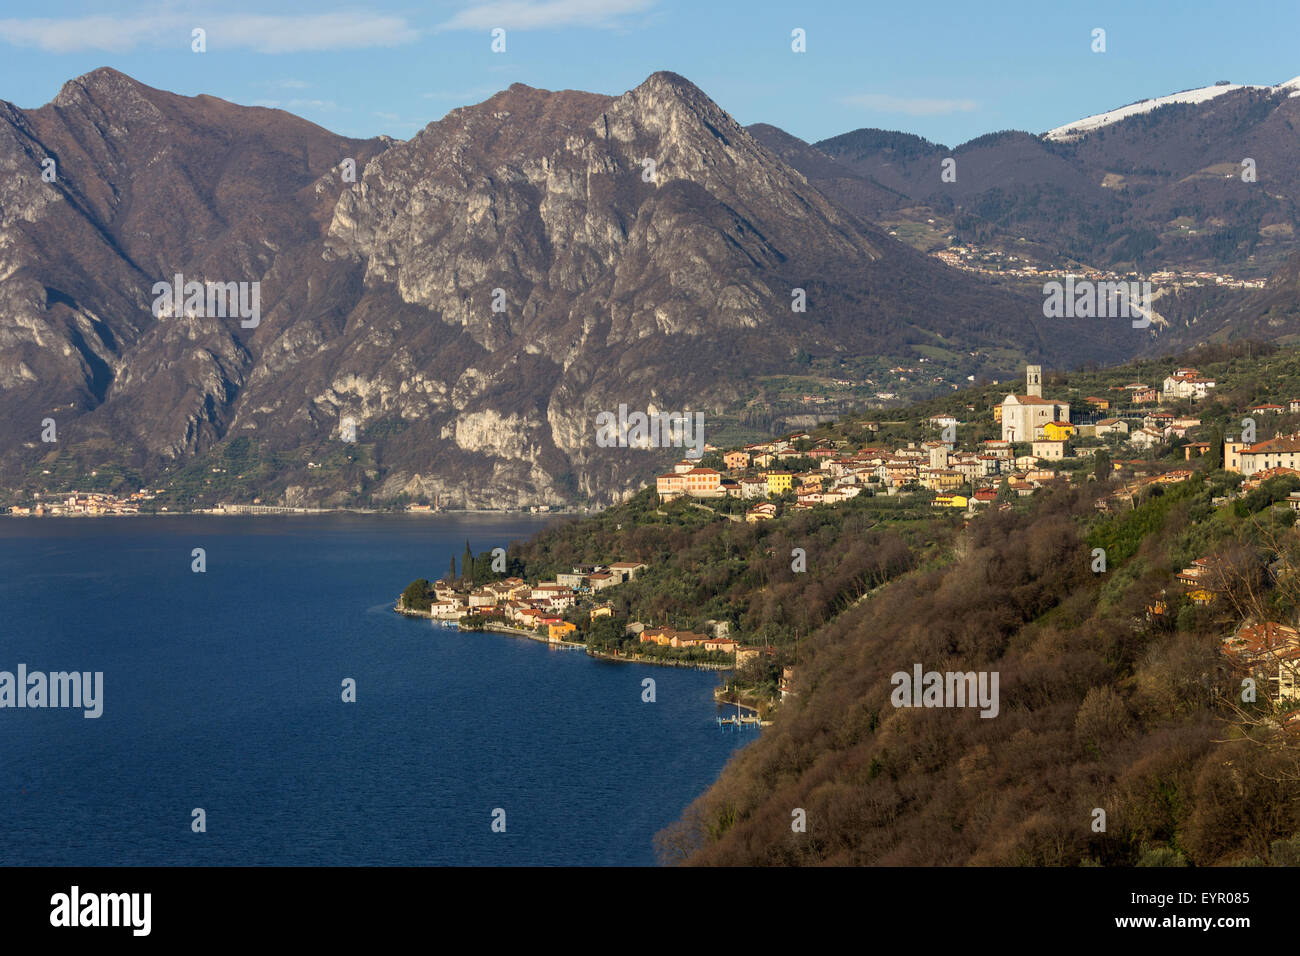 Italy, Lombardy, Iseo lake, Monte Isola - Stock Image